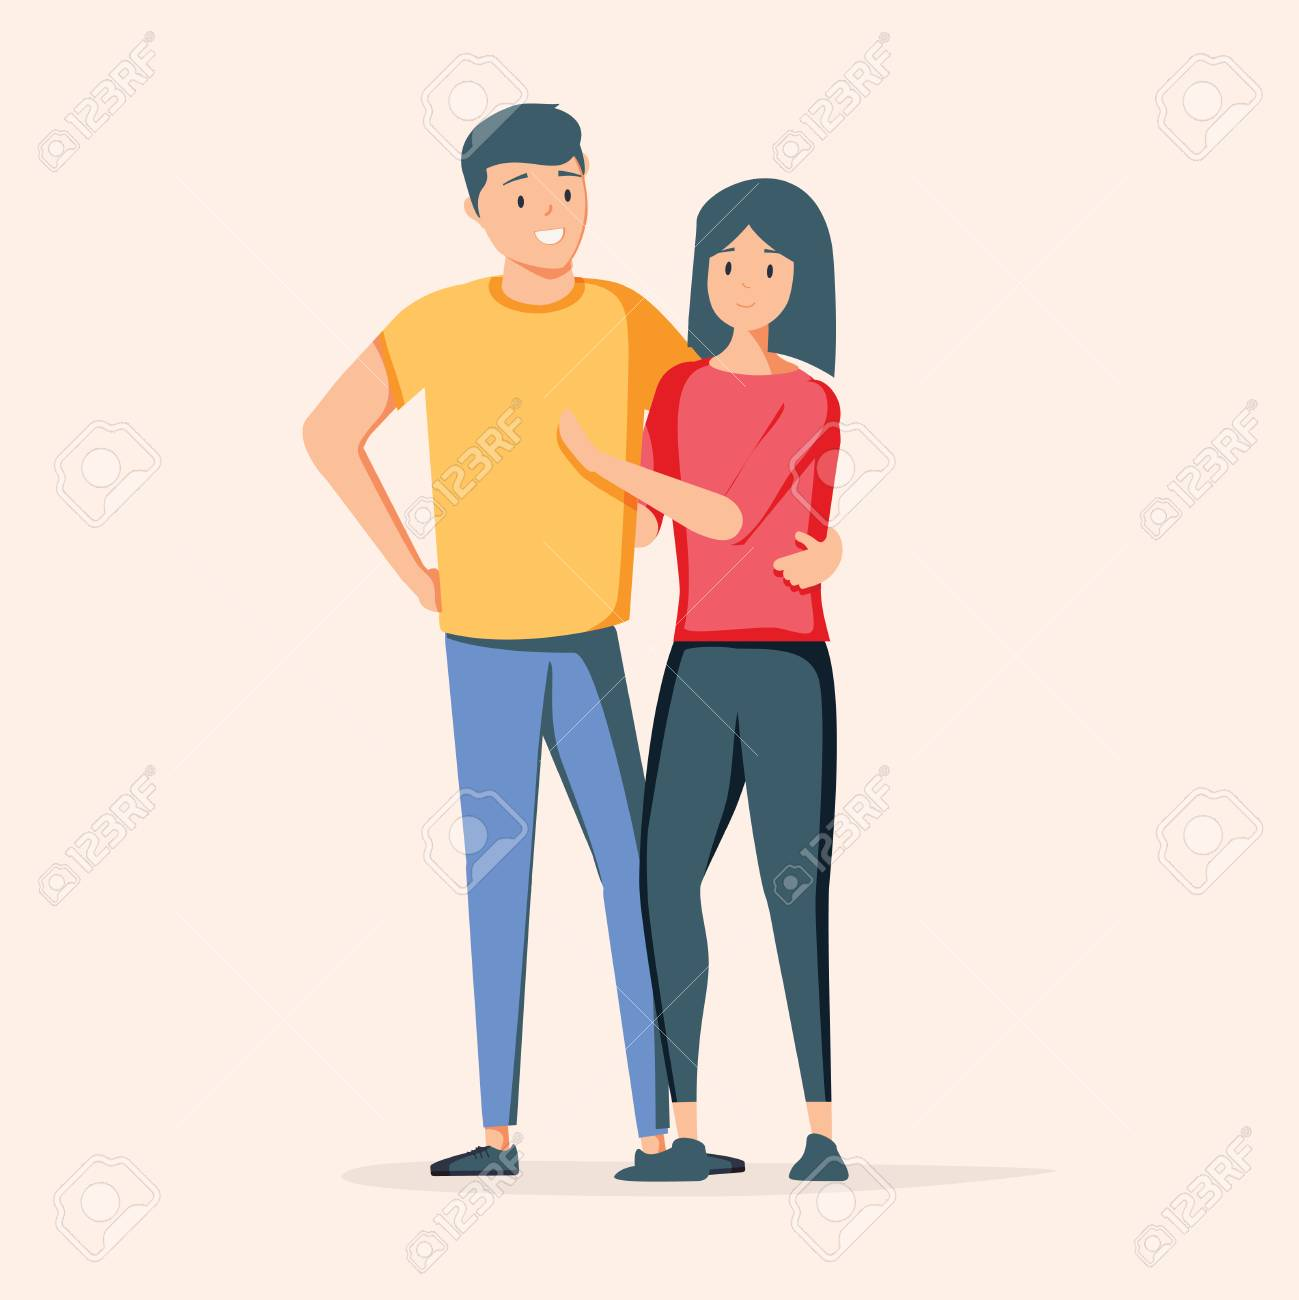 Asian couple over isolated background. Happy man and woman together. Vector illustration in cartoon style. Romantic illustration of asian lovely couple characters smiling. Dating app concept network - 127509566